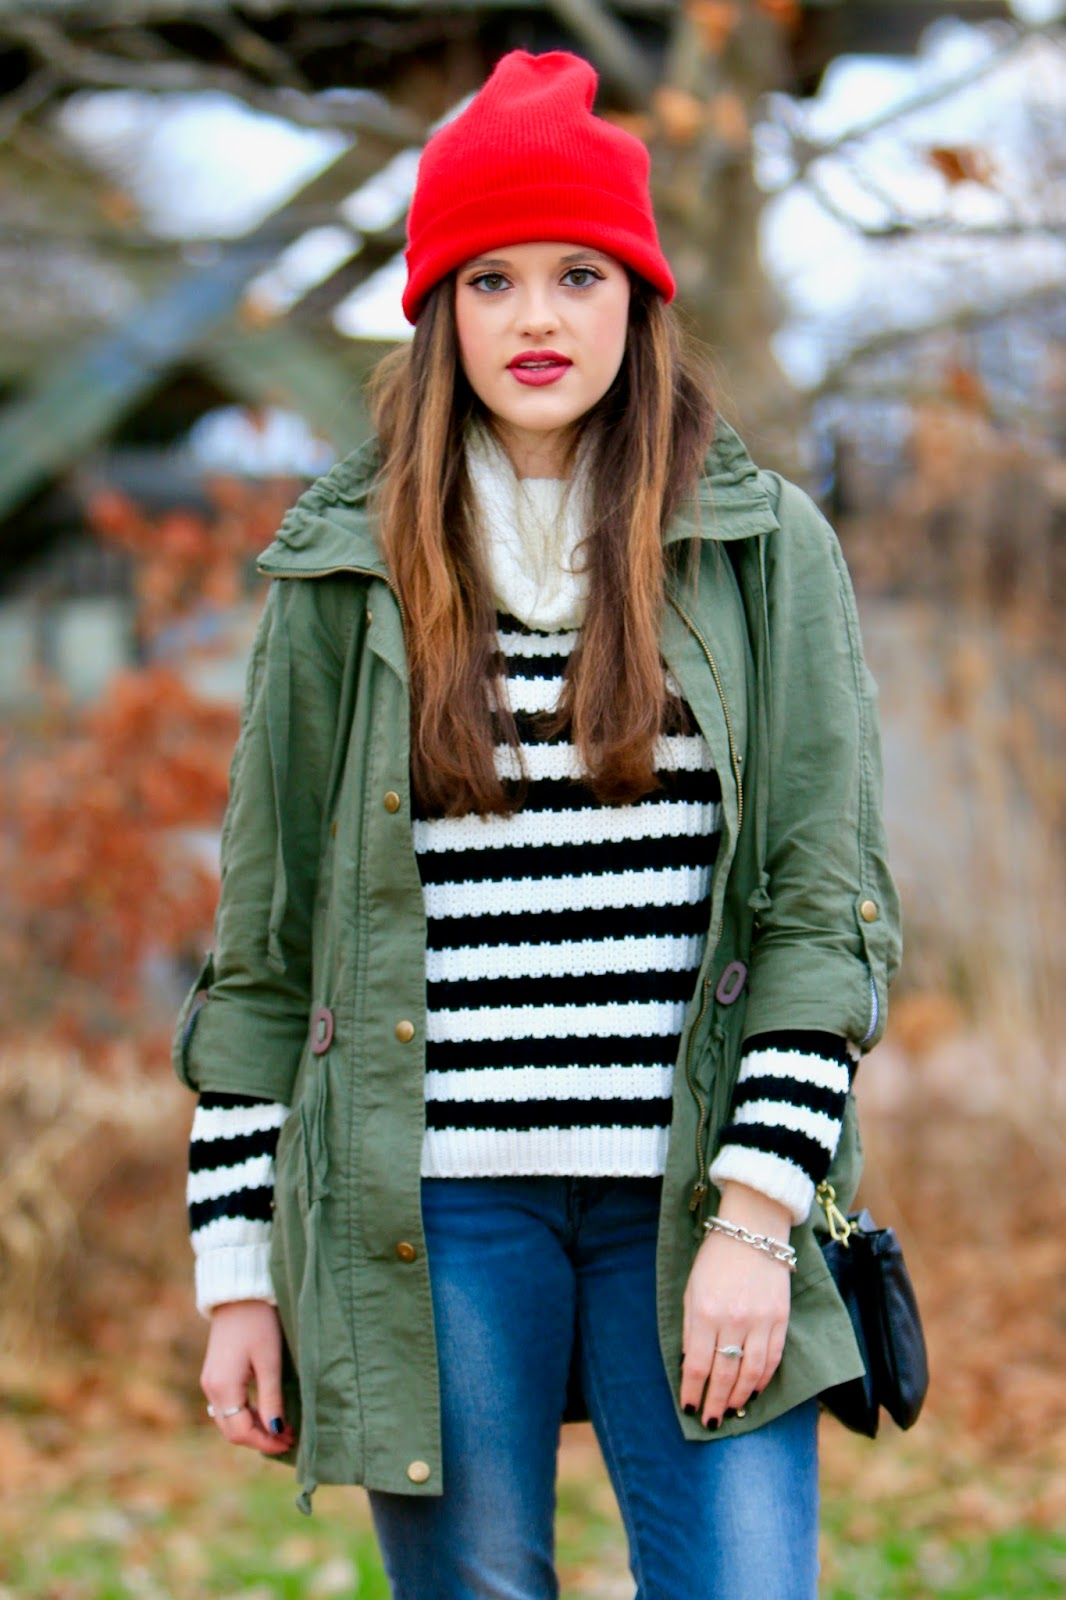 red beanie fashion blogger